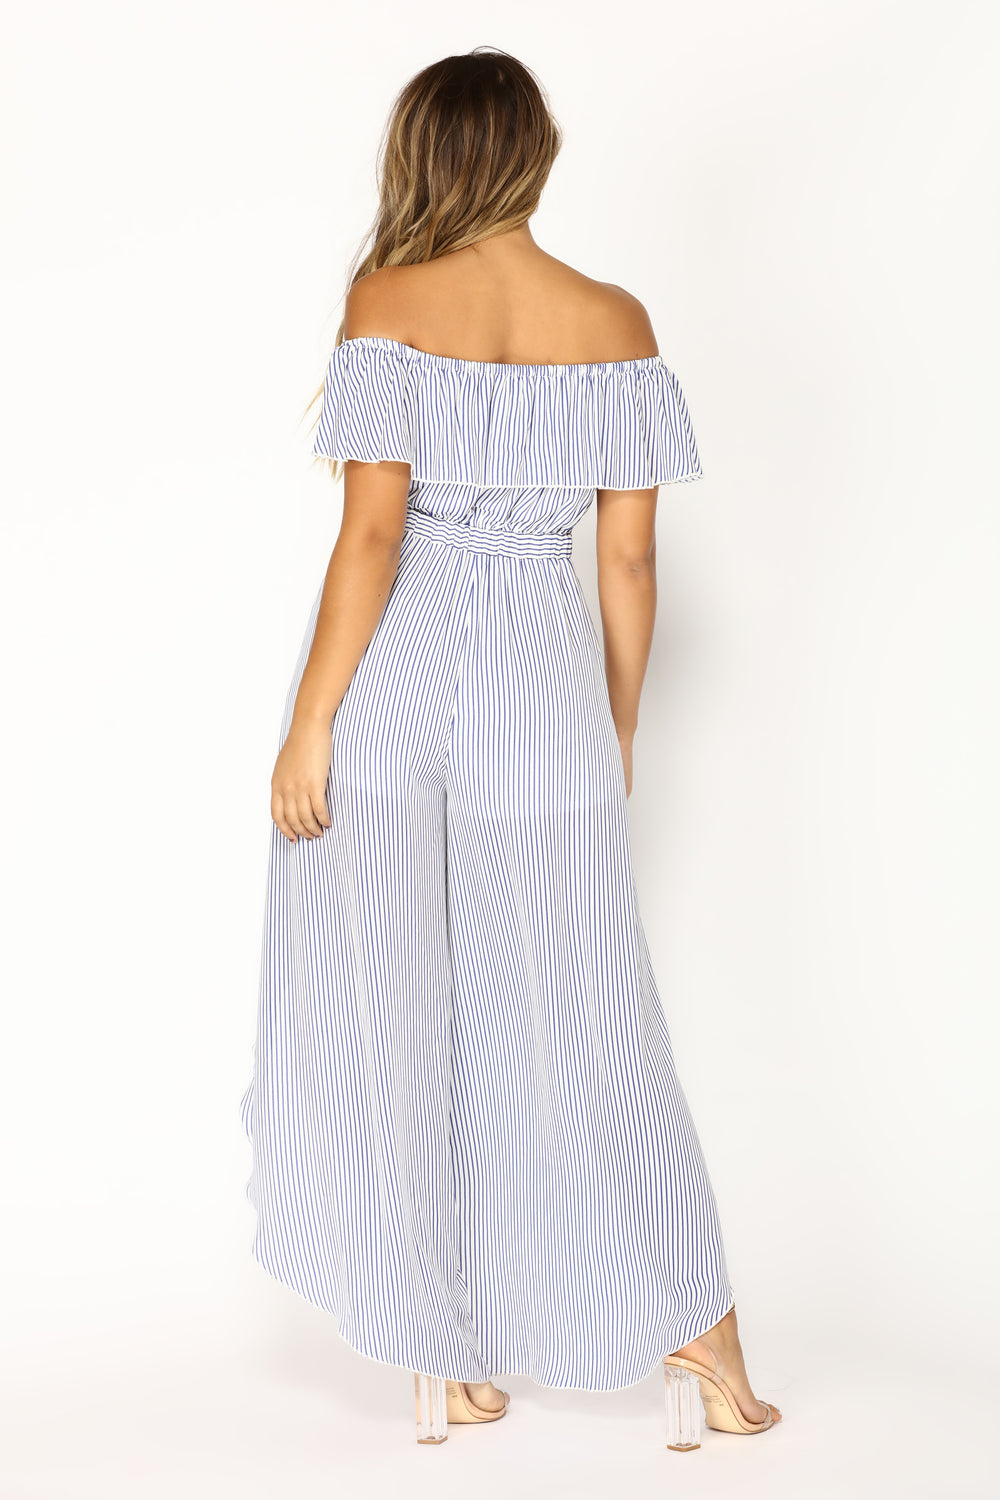 Mimosa Sunday Jumpsuit - Blue